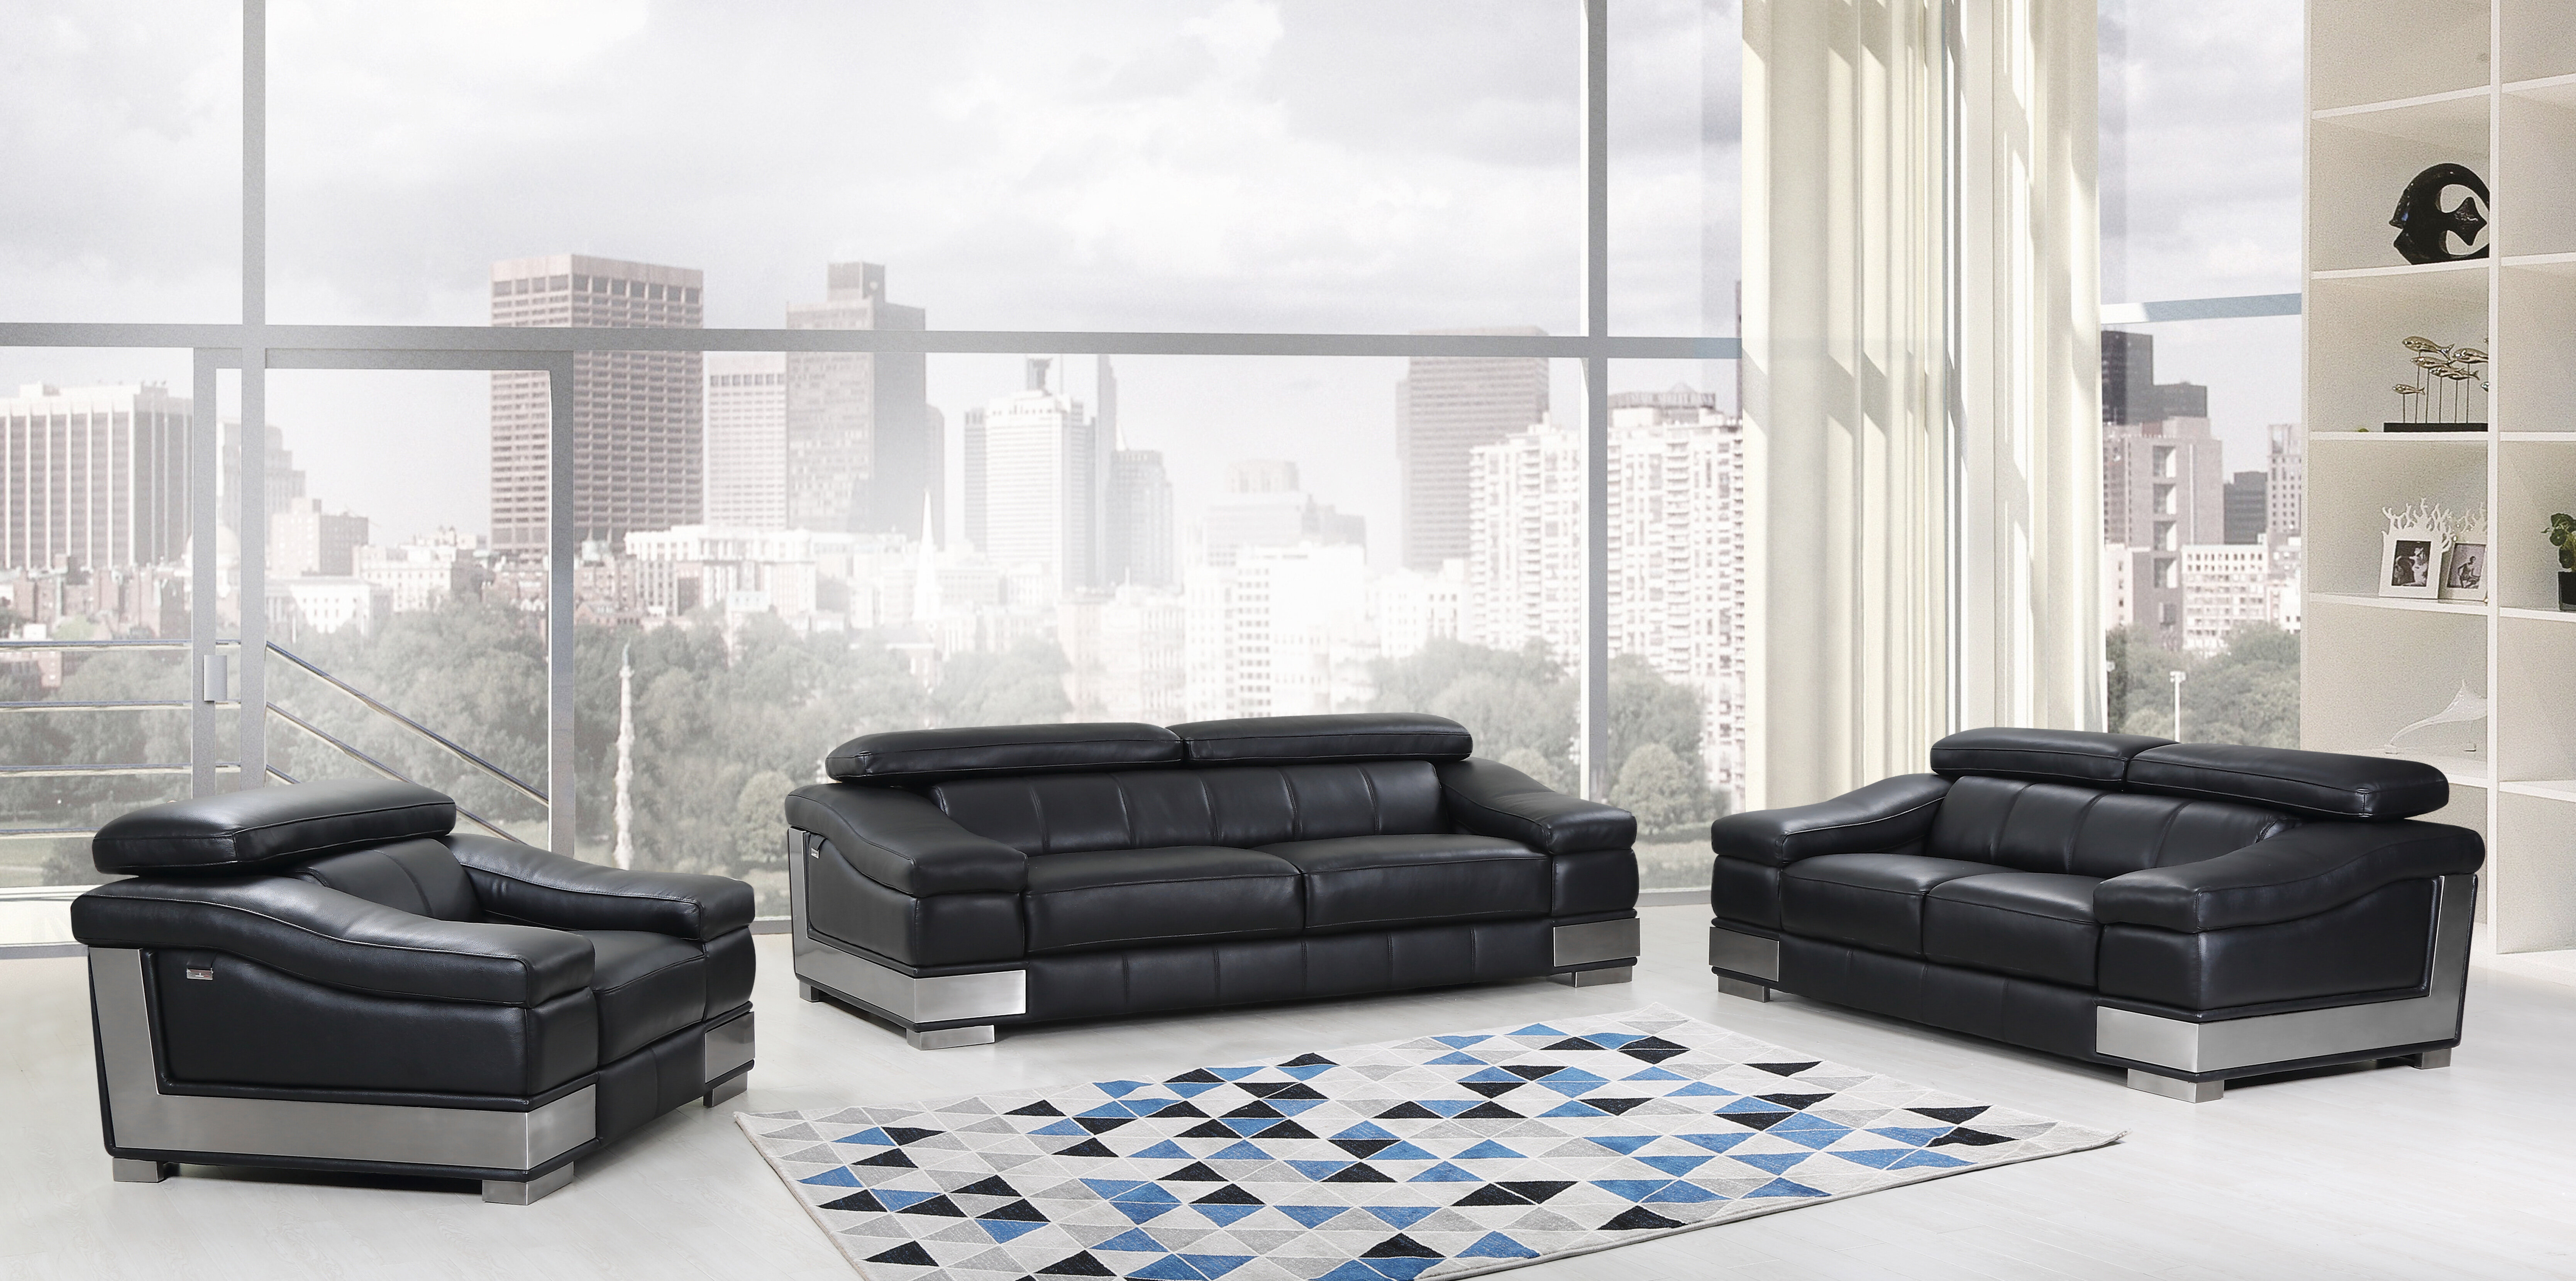 Hawkesbury Common 3 Piece Leather Living Room Set